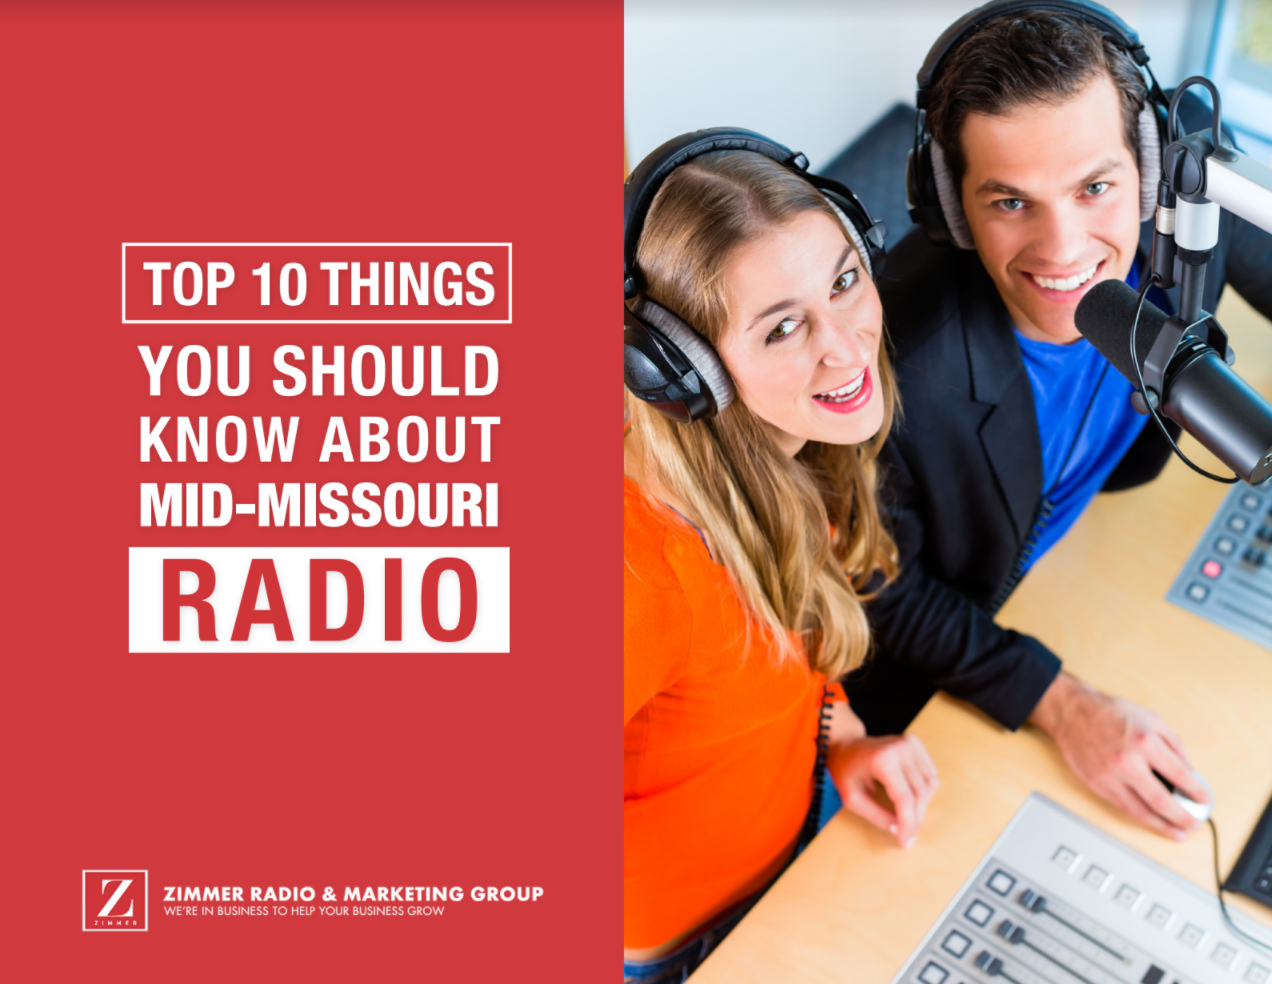 10-things-you-should-know-about-mid-missouri-radio.png